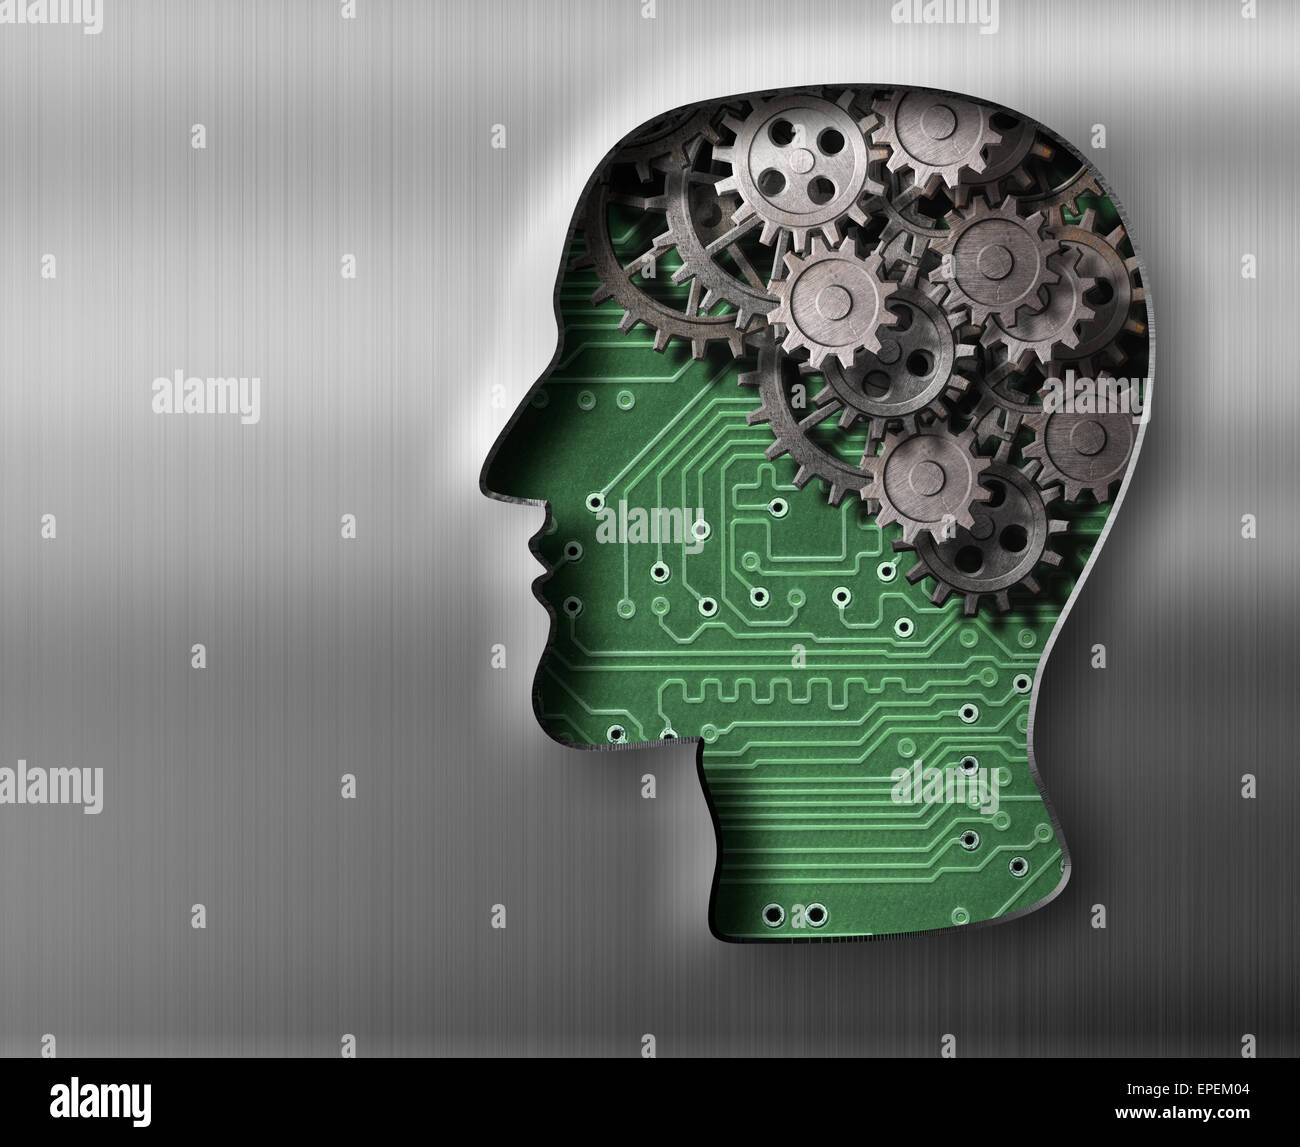 Brain model in metal plate - Stock Image